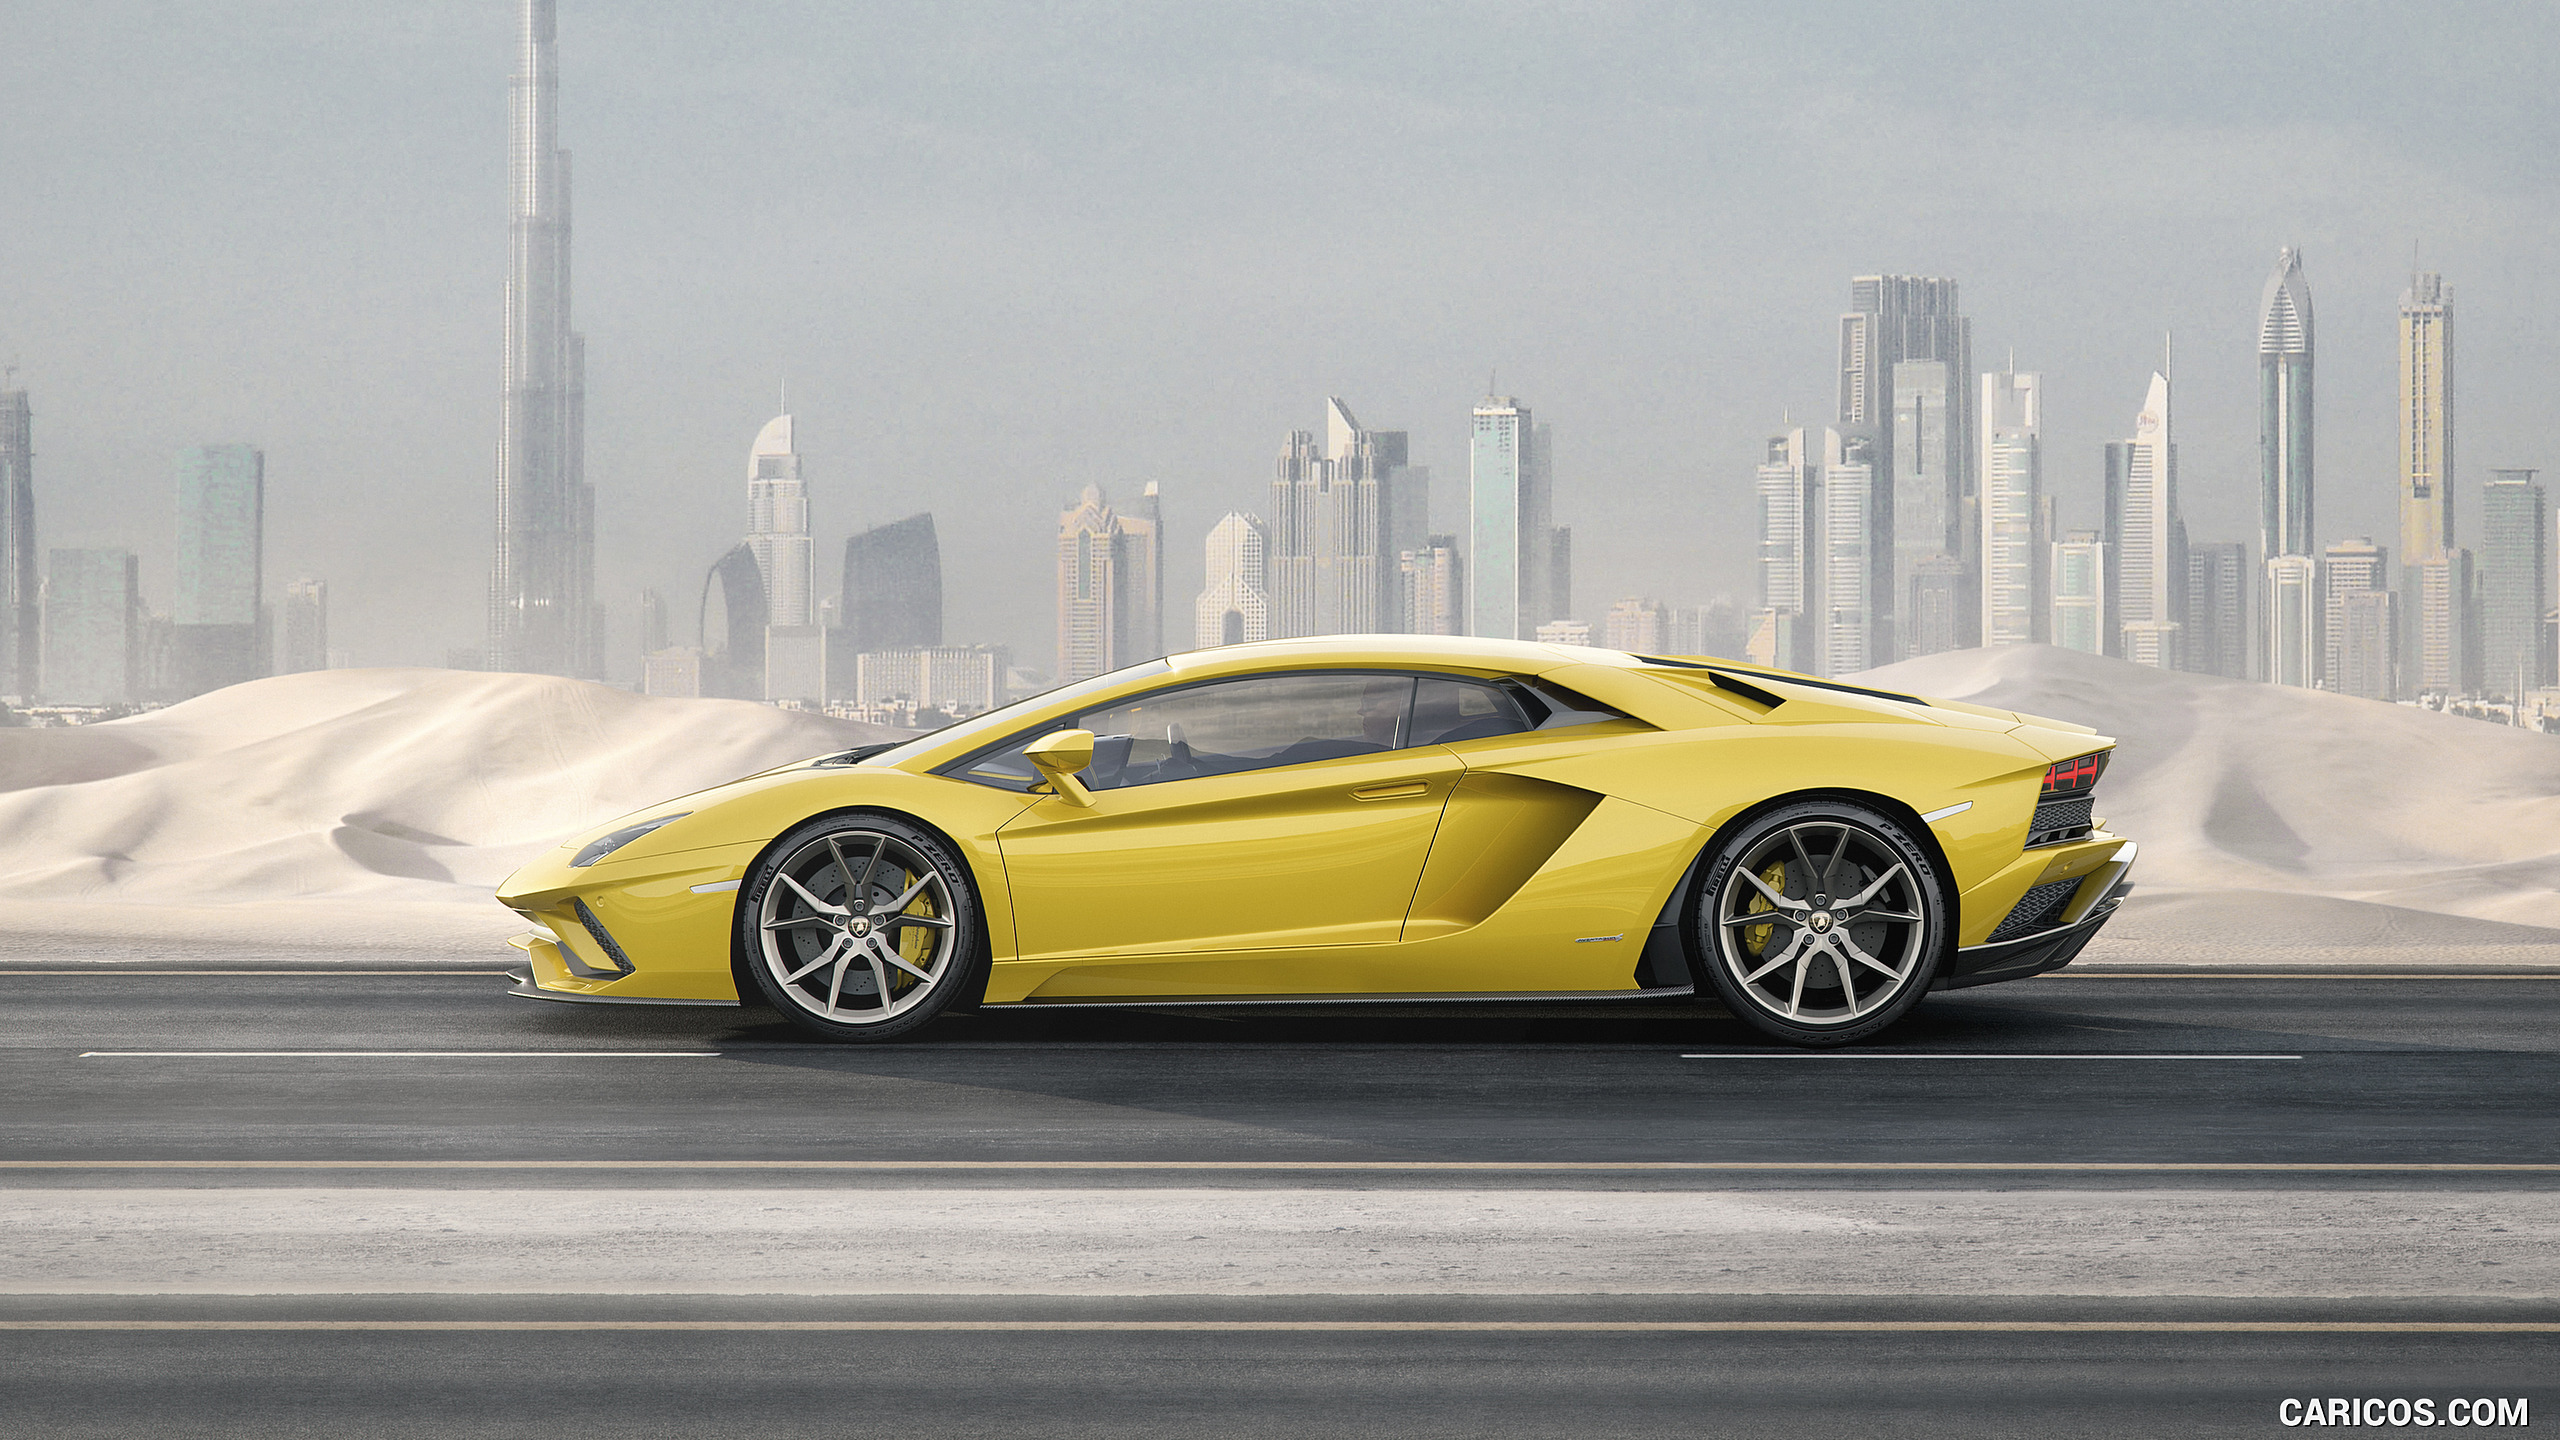 2017 Lamborghini Aventador S   Side HD Wallpaper 9 2560x1440